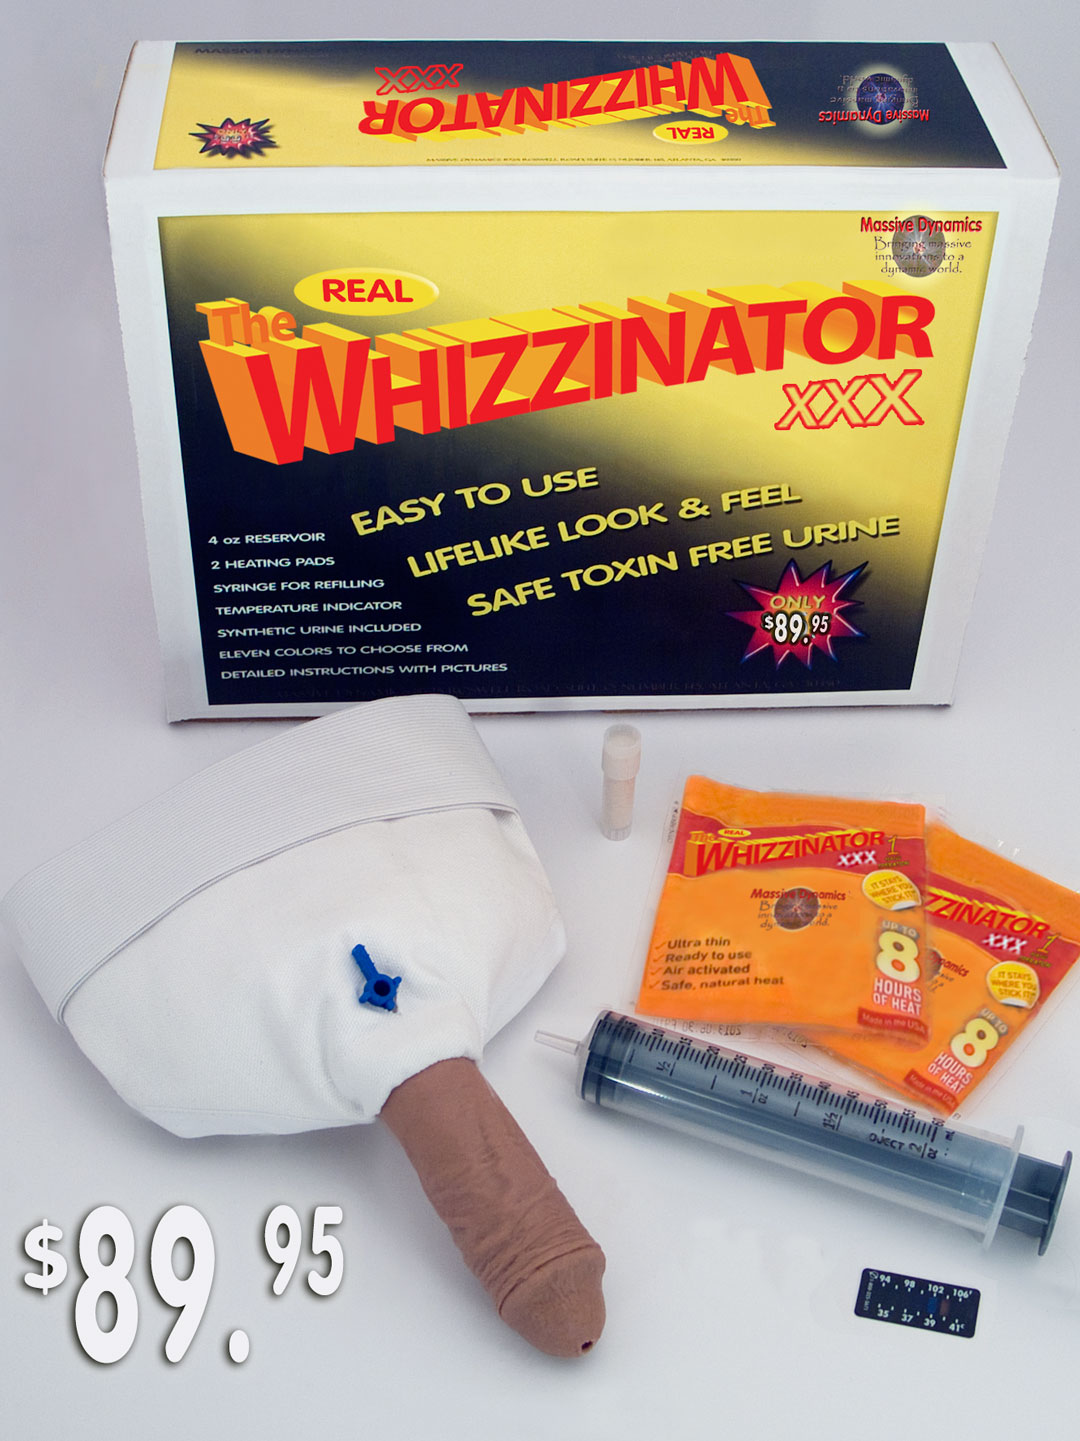 Real Whizzinator XXX Products For Sale